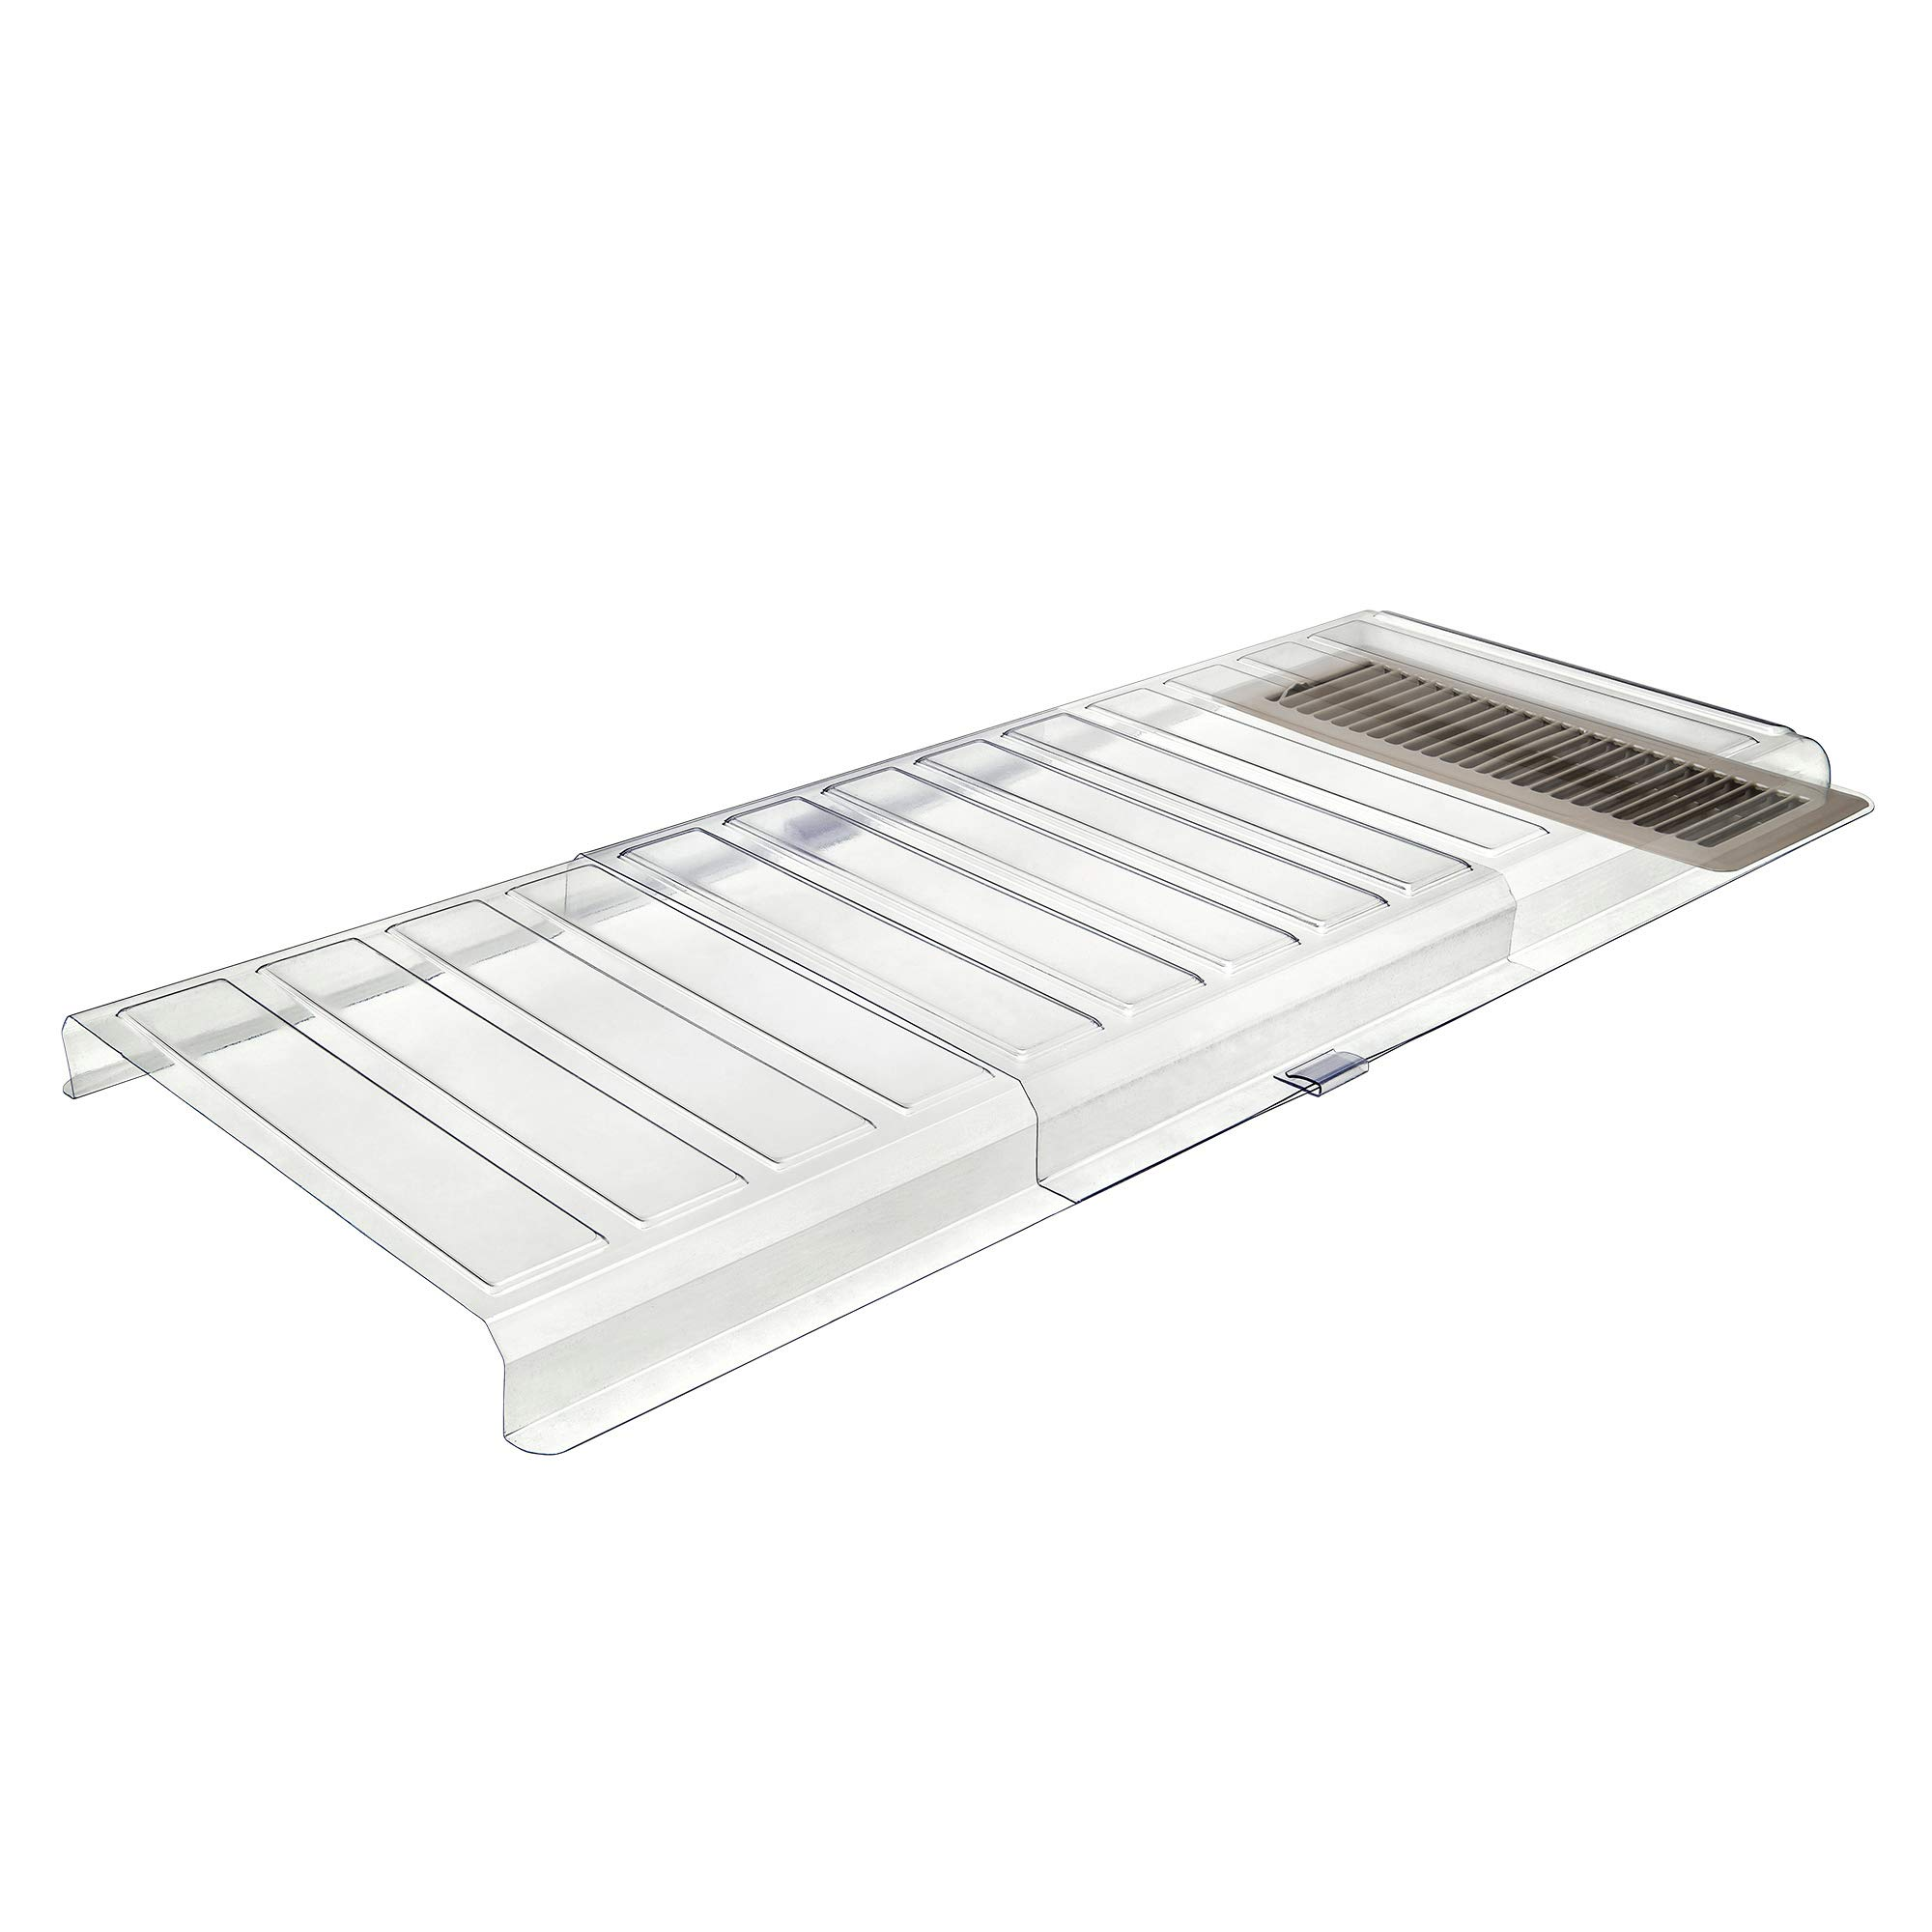 Deflecto Furniture Deflector Air Vent Extender, Linking Clips and Tape Included, For Use with Floor Registers Up to 11'' Wide, Clear (UFAD) by Deflecto